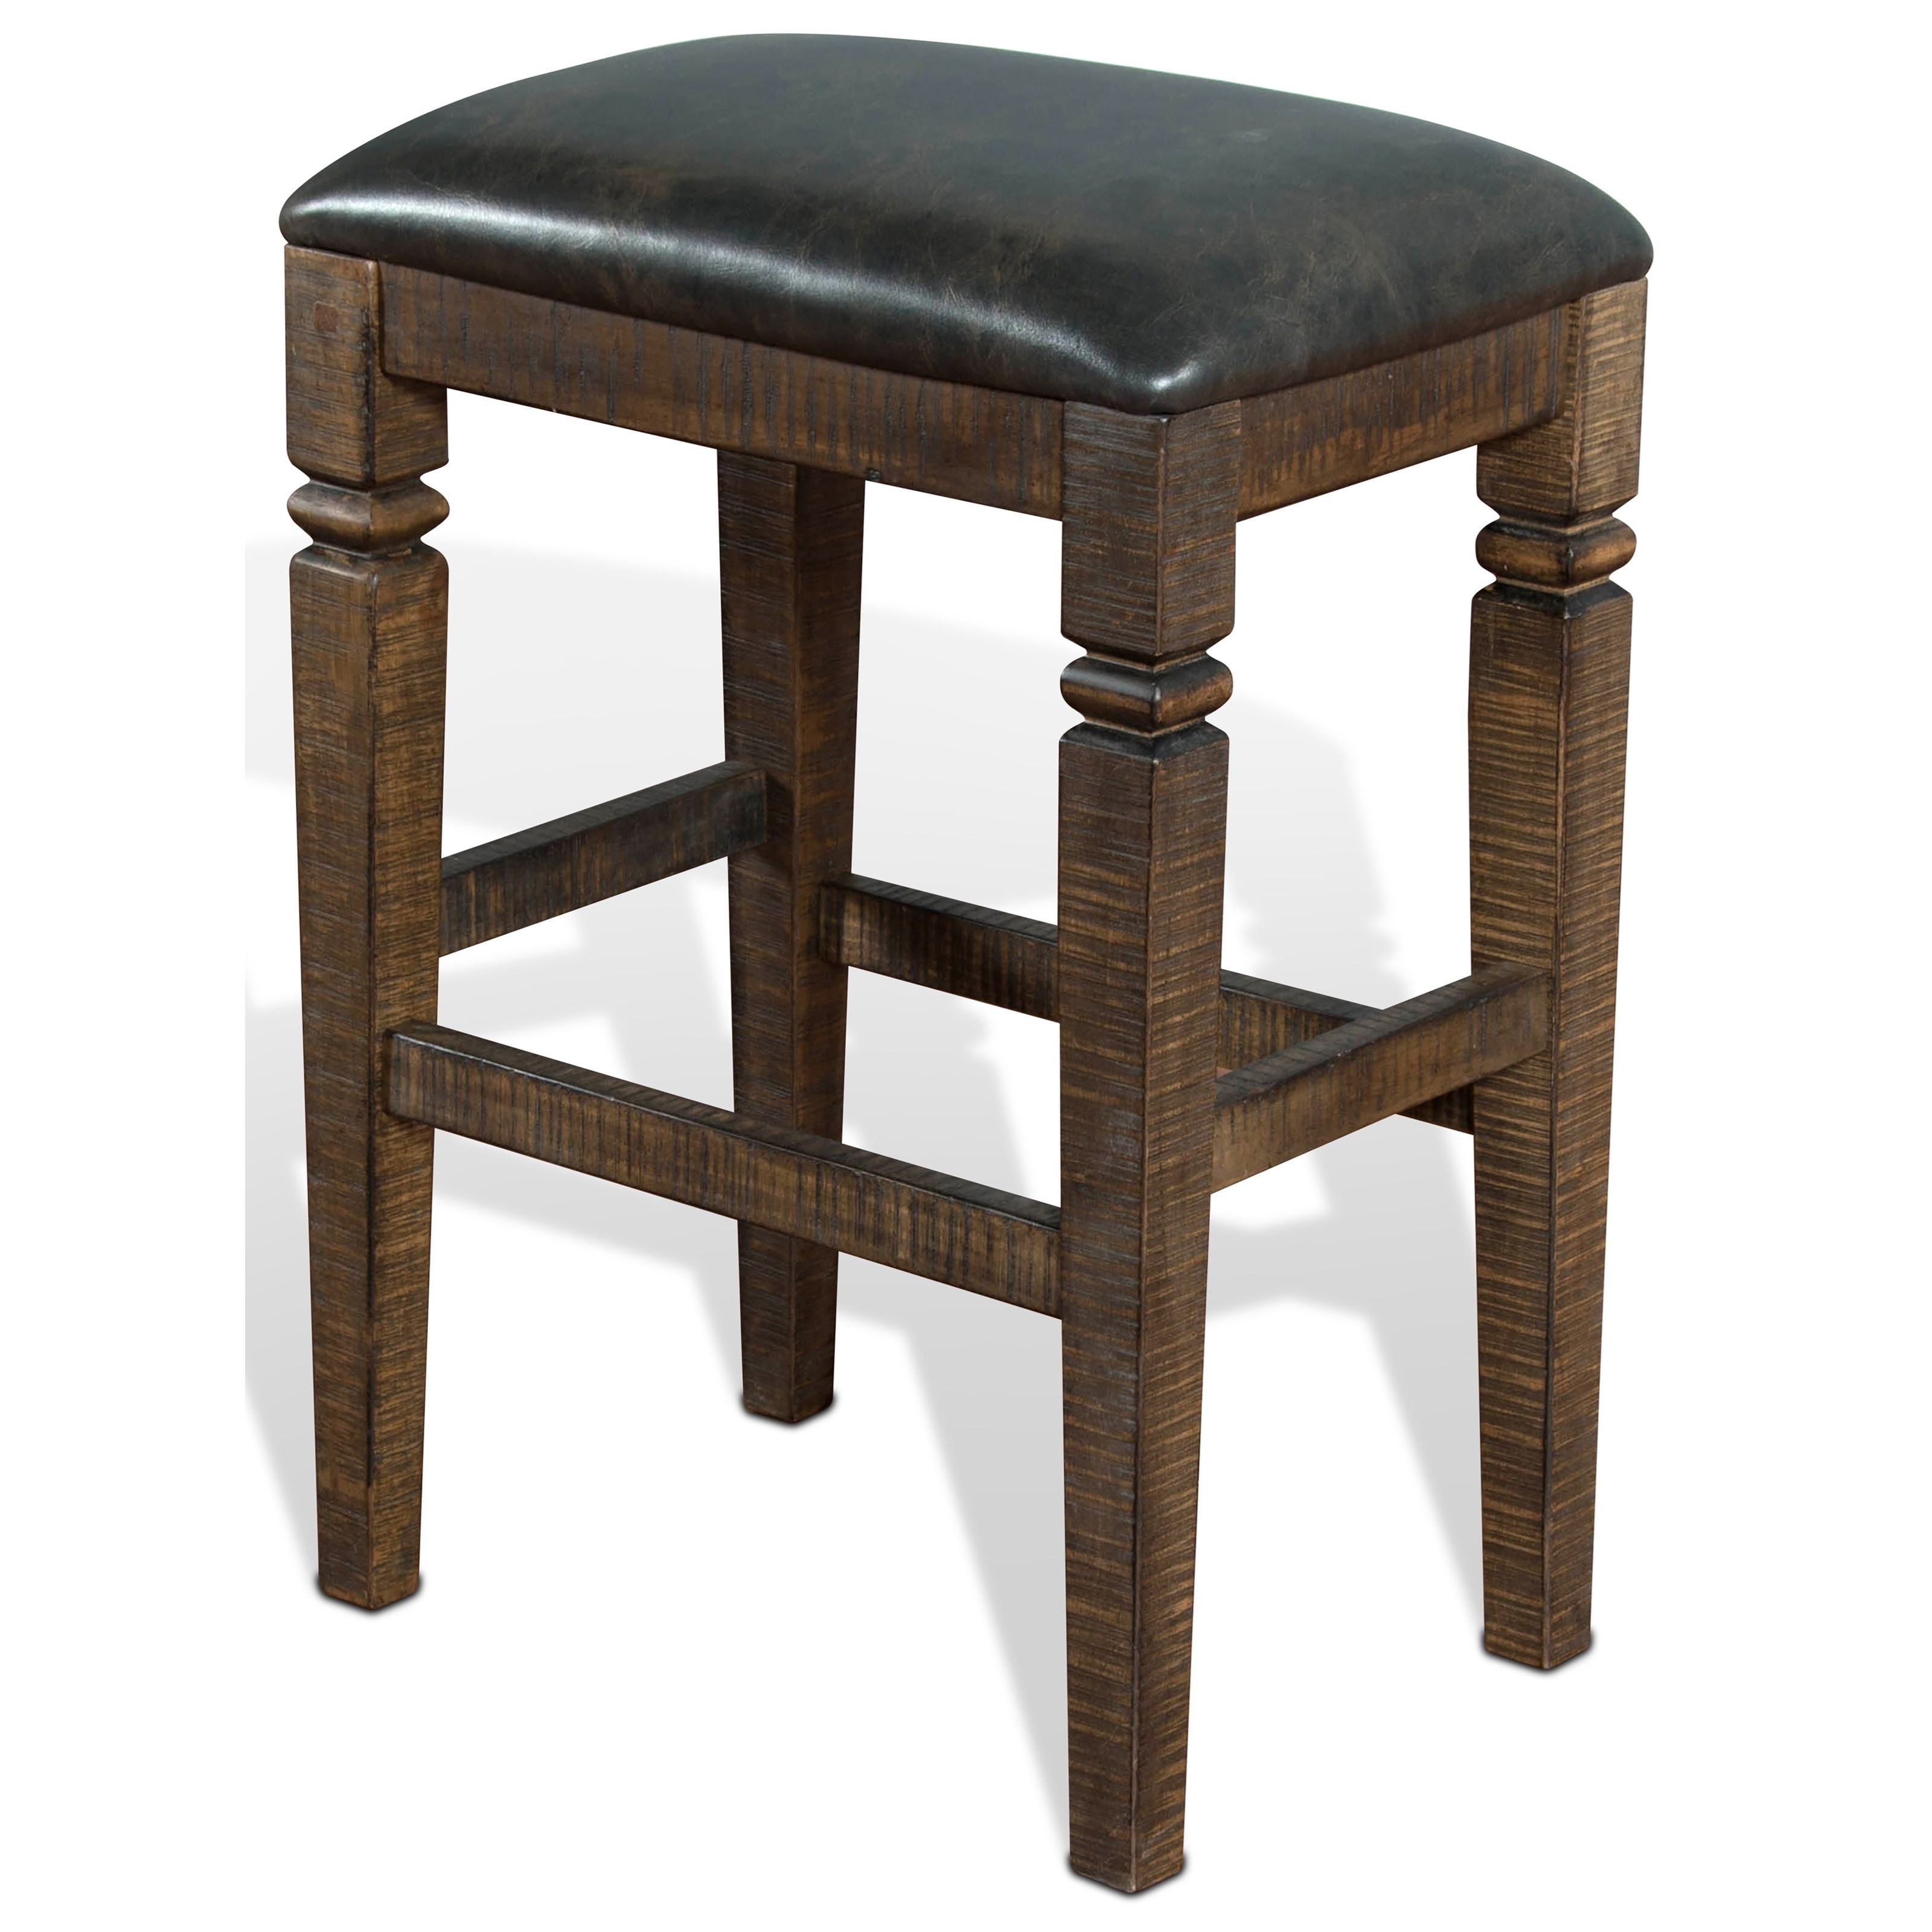 Homestead 2 Backless Stool w/ Cushion Seat by Sunny Designs at Stoney Creek Furniture